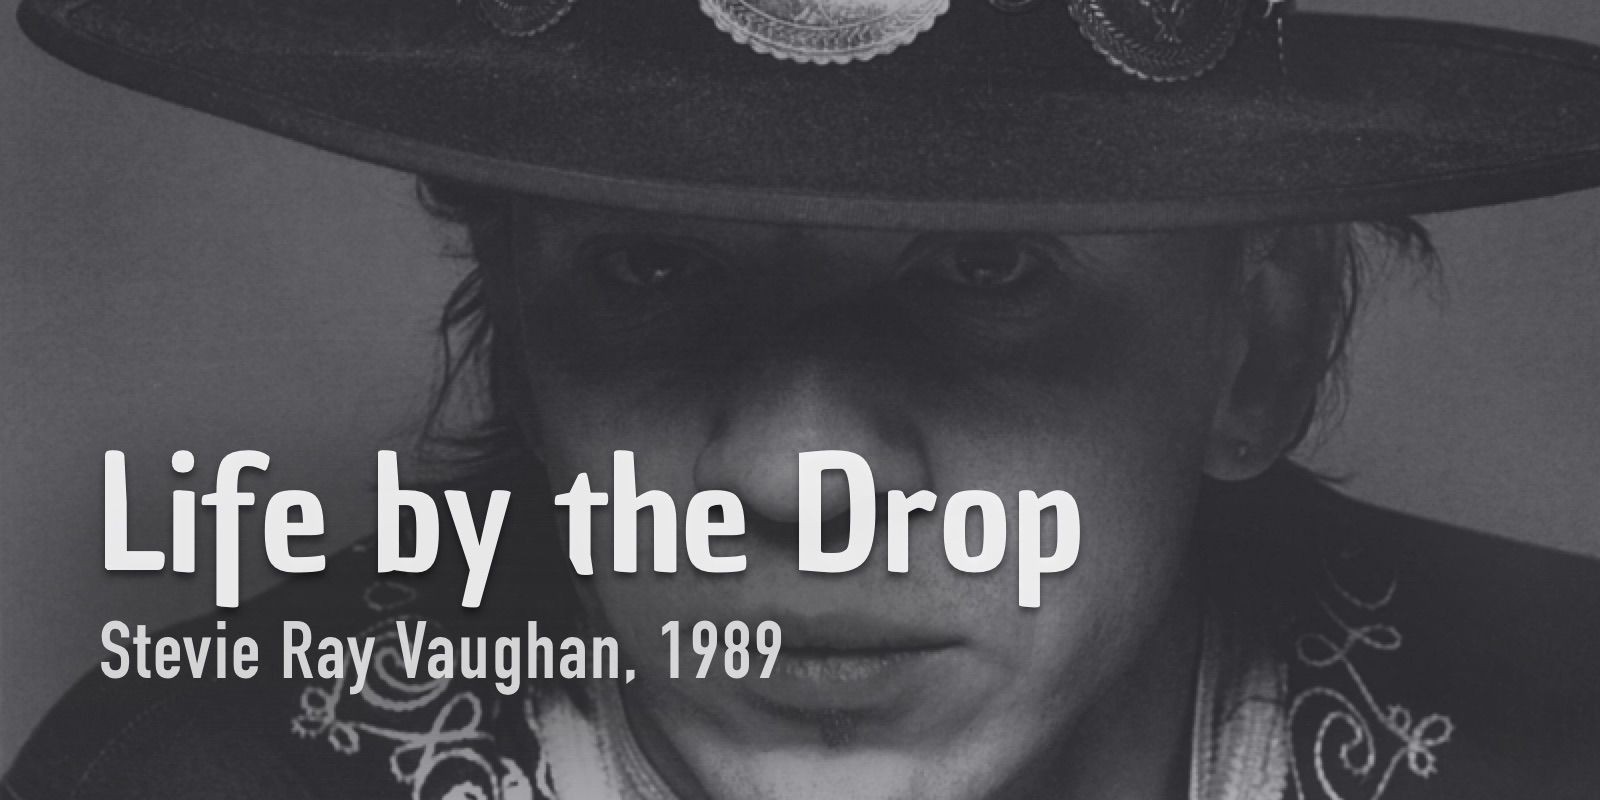 How To Play Life by the drop. Burninguitar show you how to play Life by the drop by Stevie Ray Vaughan. A great classic of Acoustic Blues Guitar.